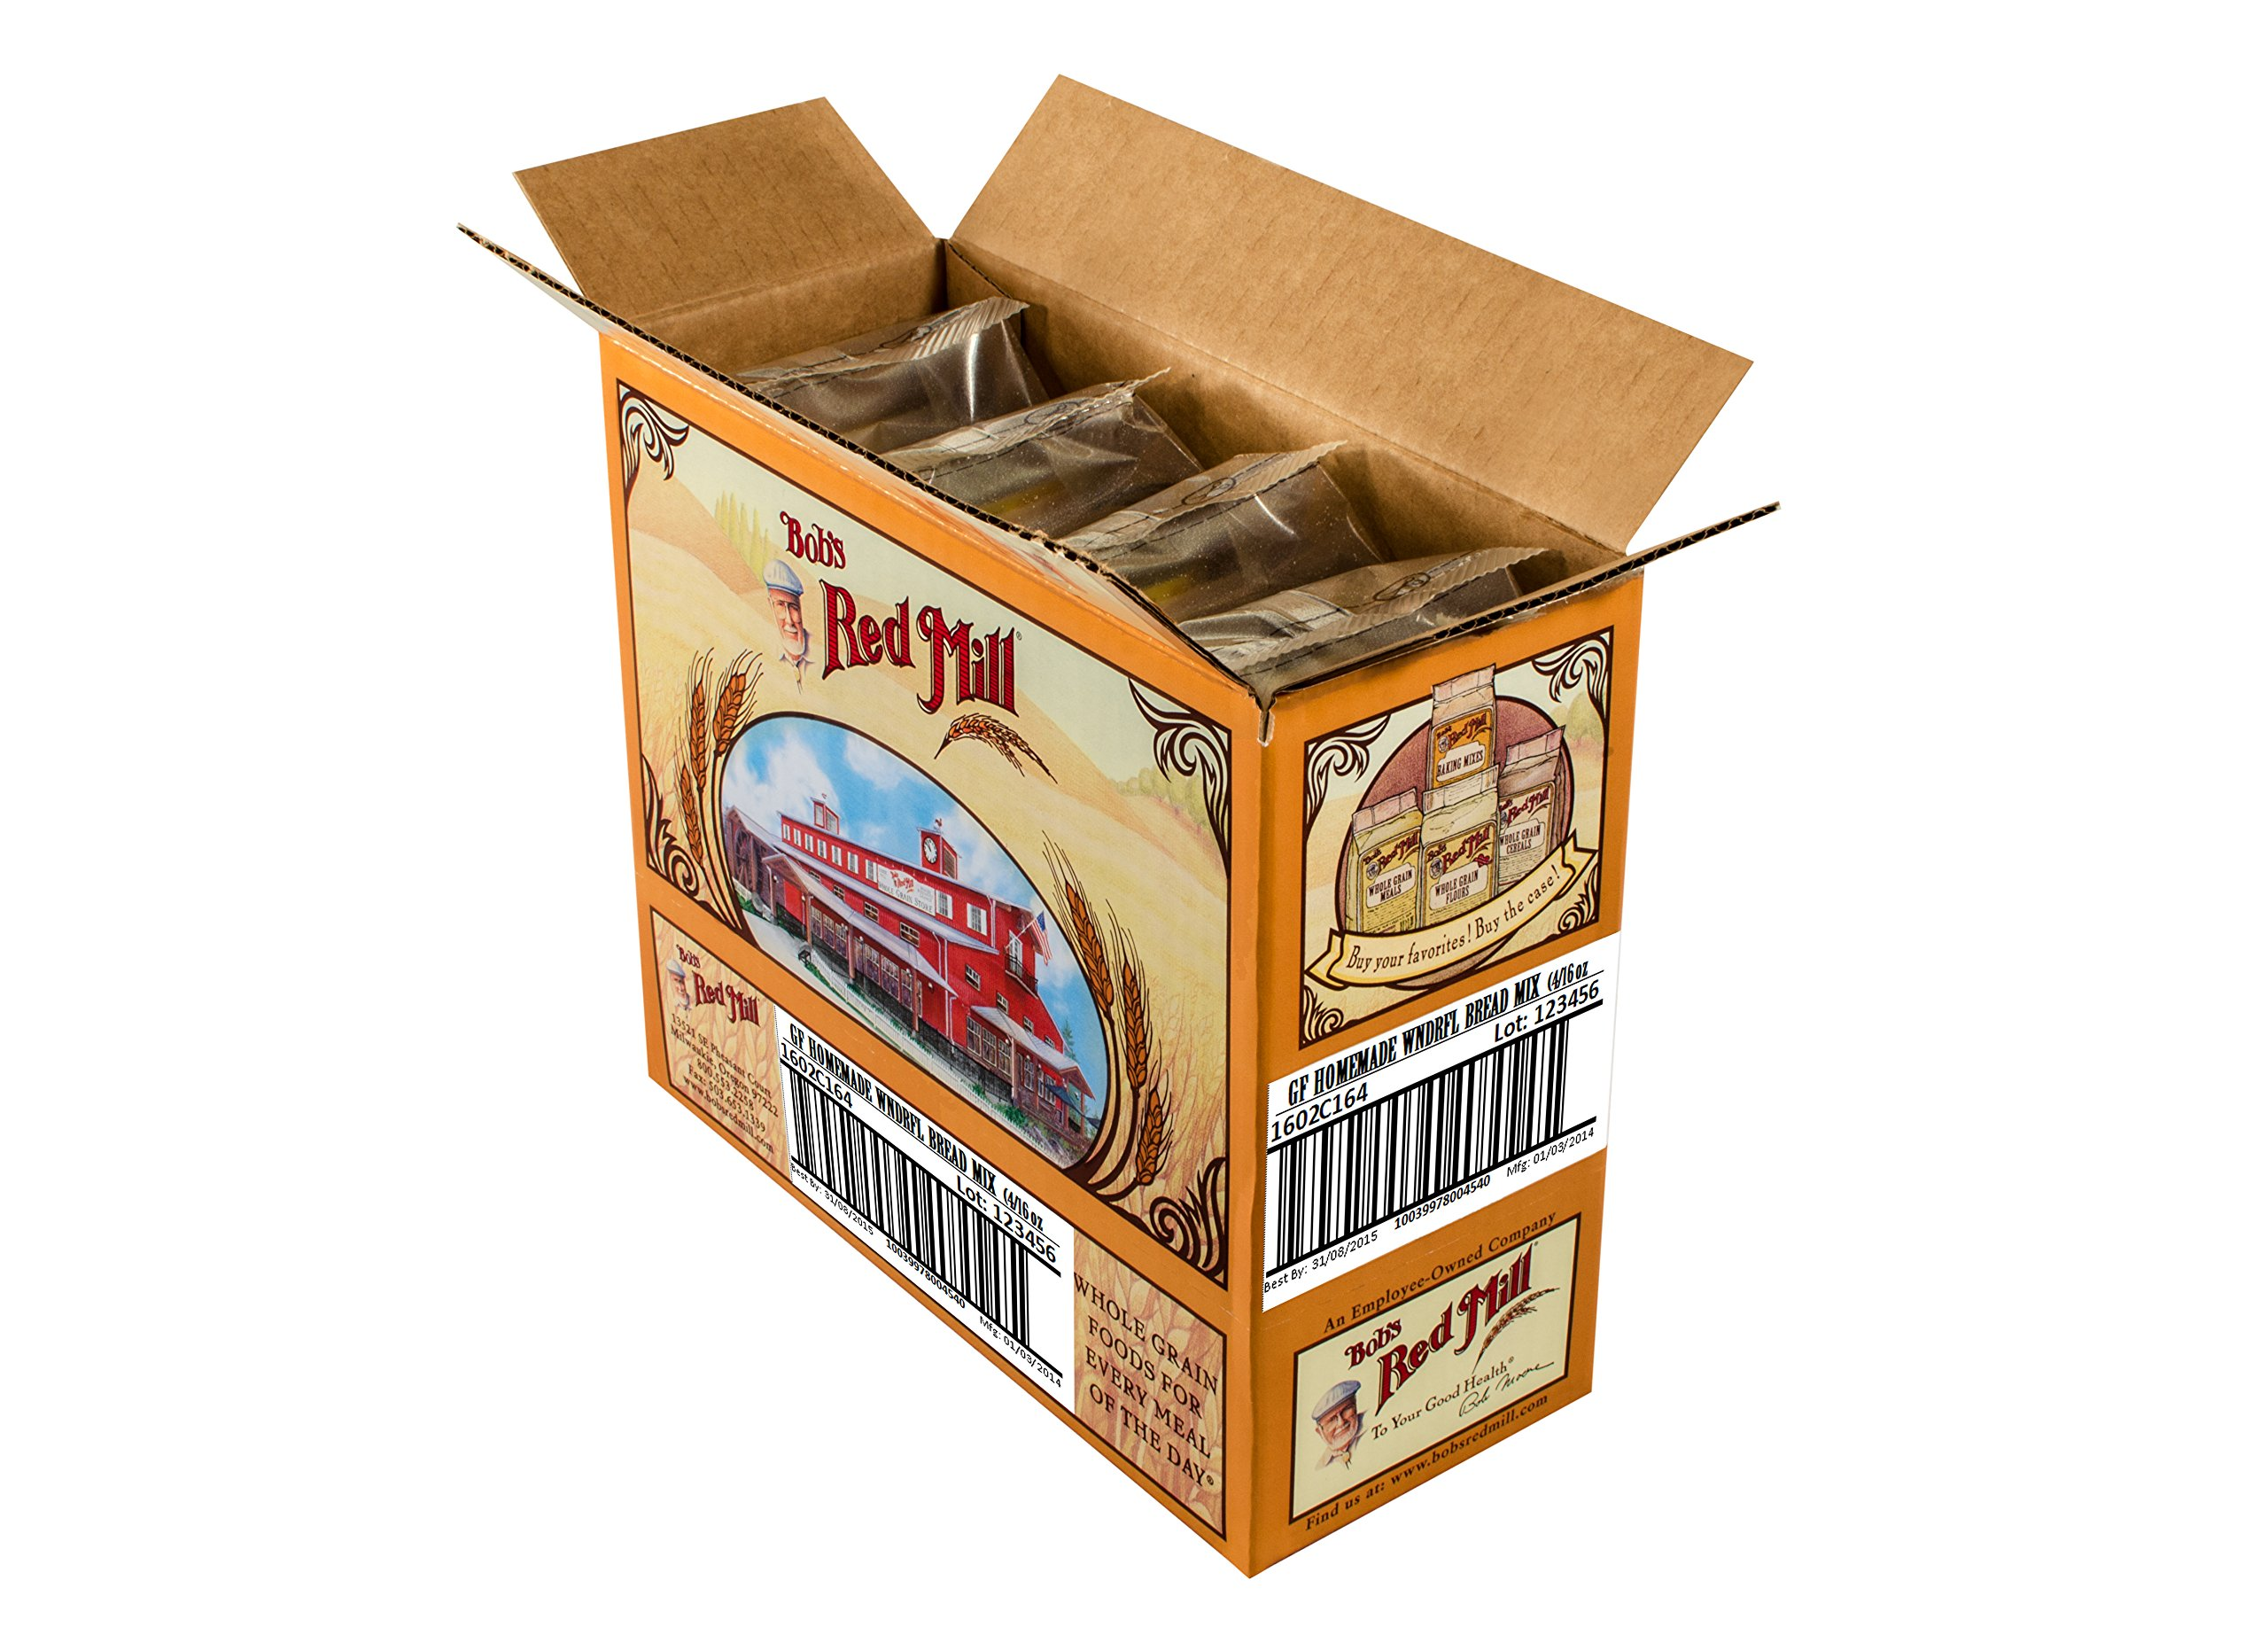 Bob's Red Mill Gluten Free Homemade Wonderful Bread Mix, 16-ounce (Pack of 4) by Bob's Red Mill (Image #8)